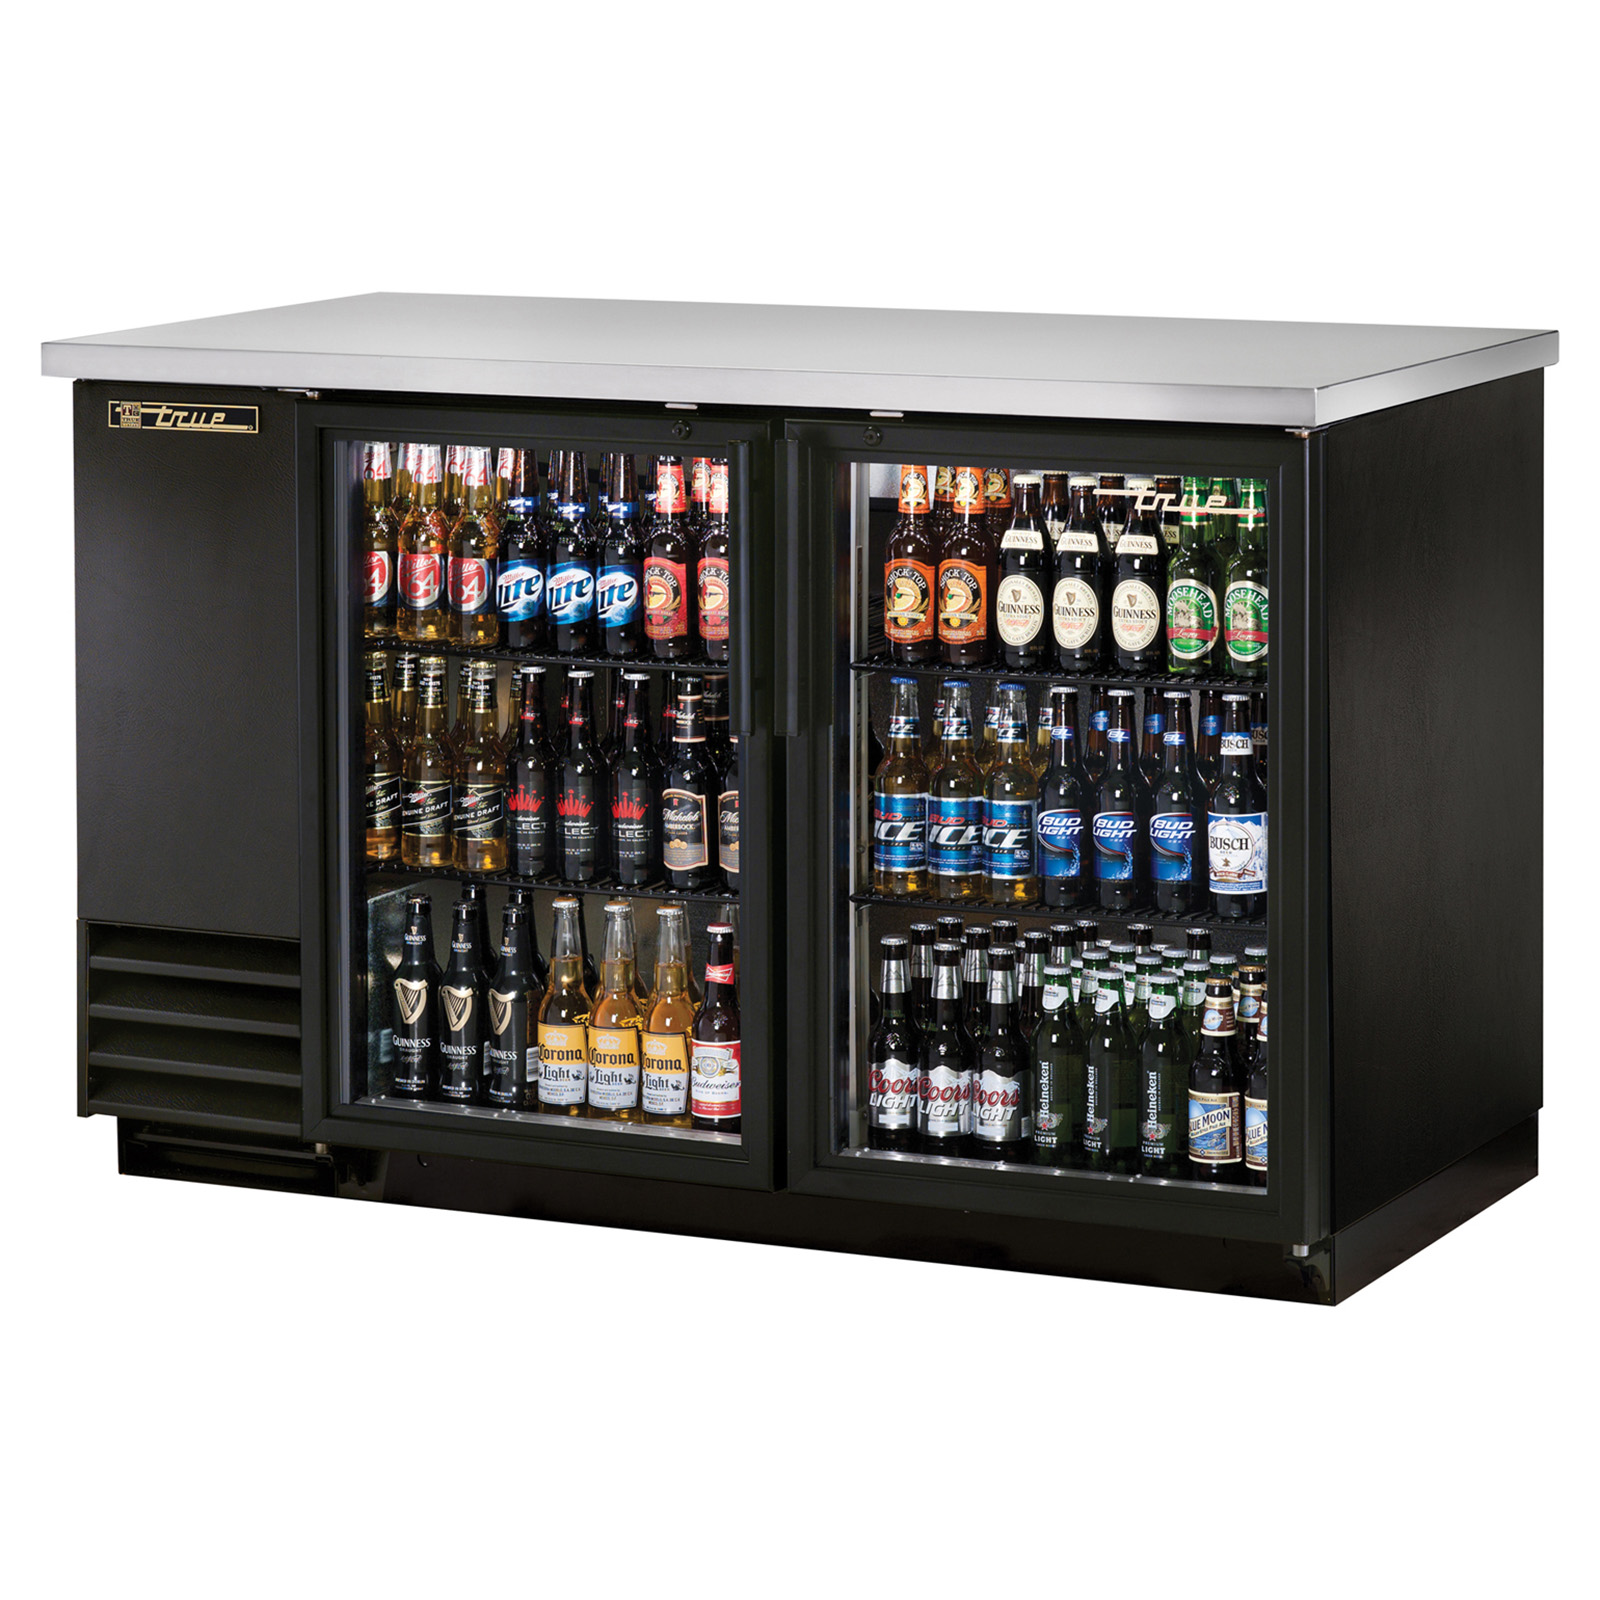 TBB-2G – True Back Bar Cooler